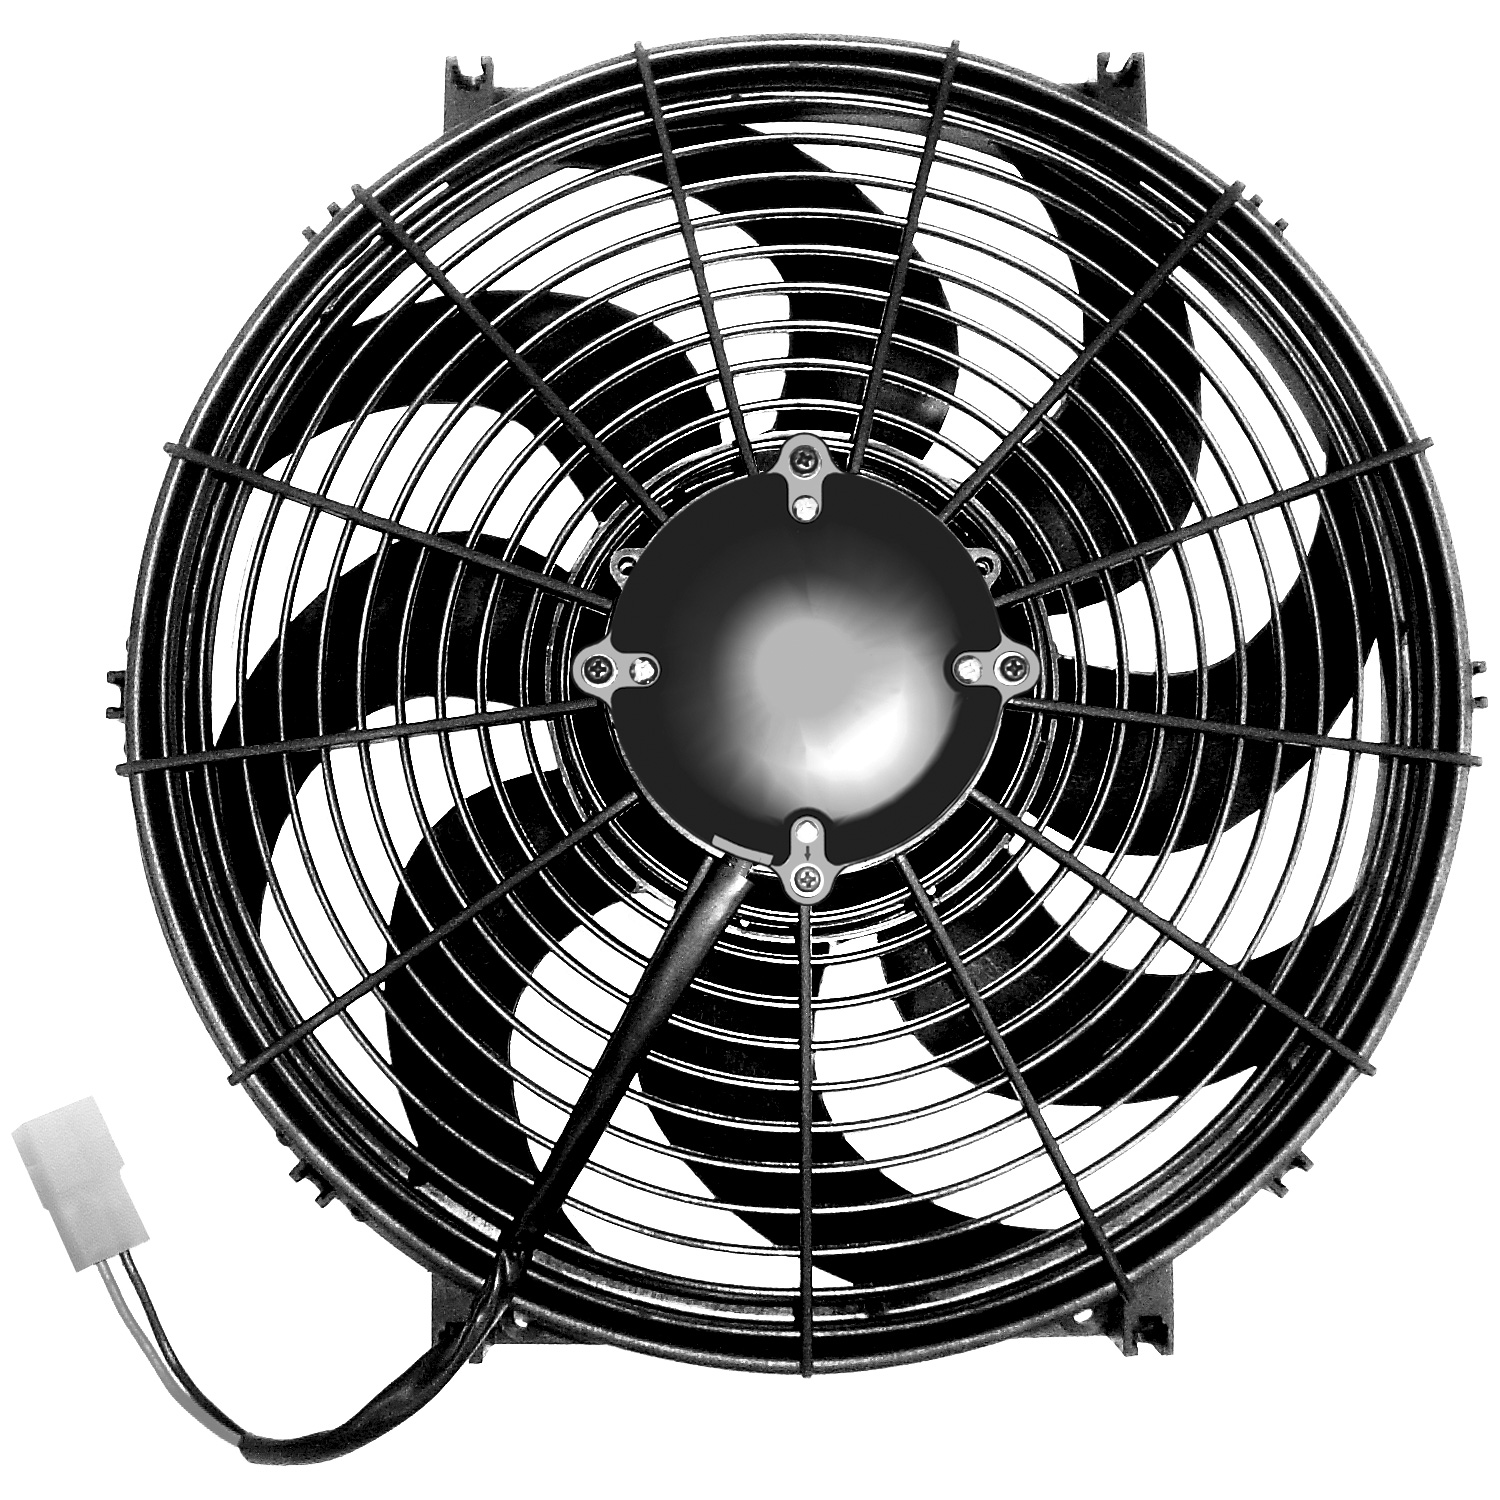 New From Summit Racing Equipment: Maradyne Electric Fans #666666